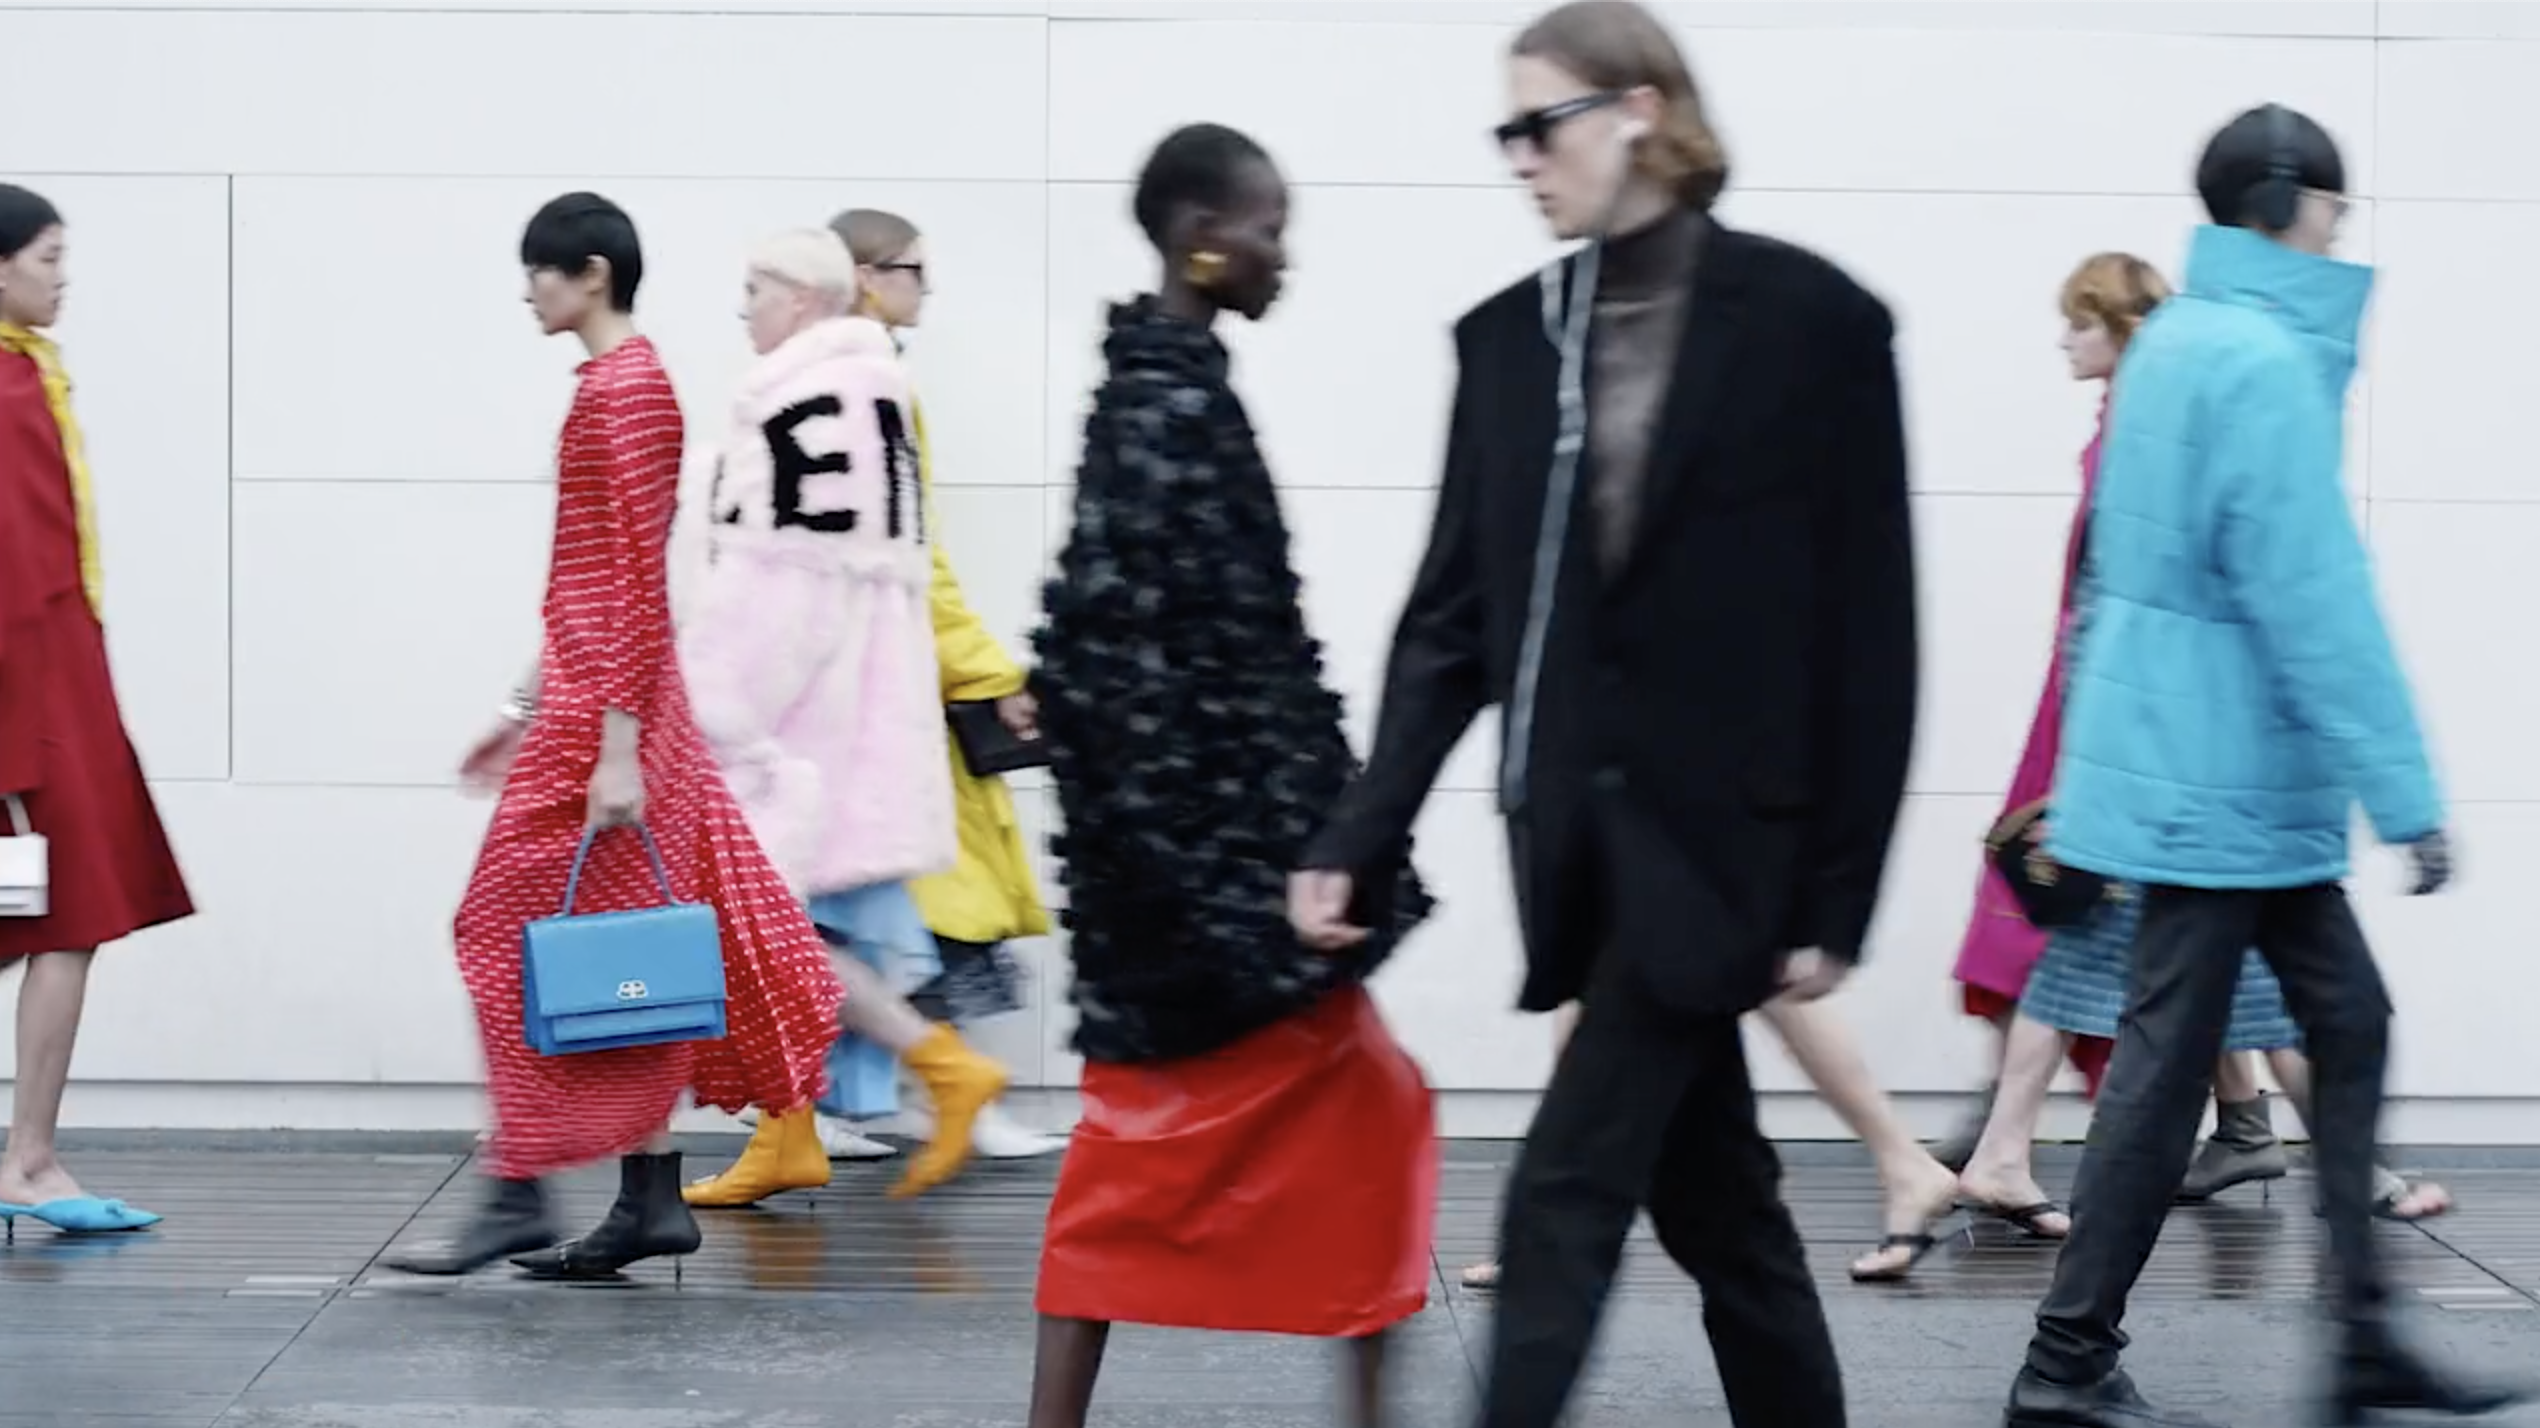 factory authentic new authentic clearance sale Balenciaga Fall 2019 Ad Campaign Film by Jean-pierre Attal ...